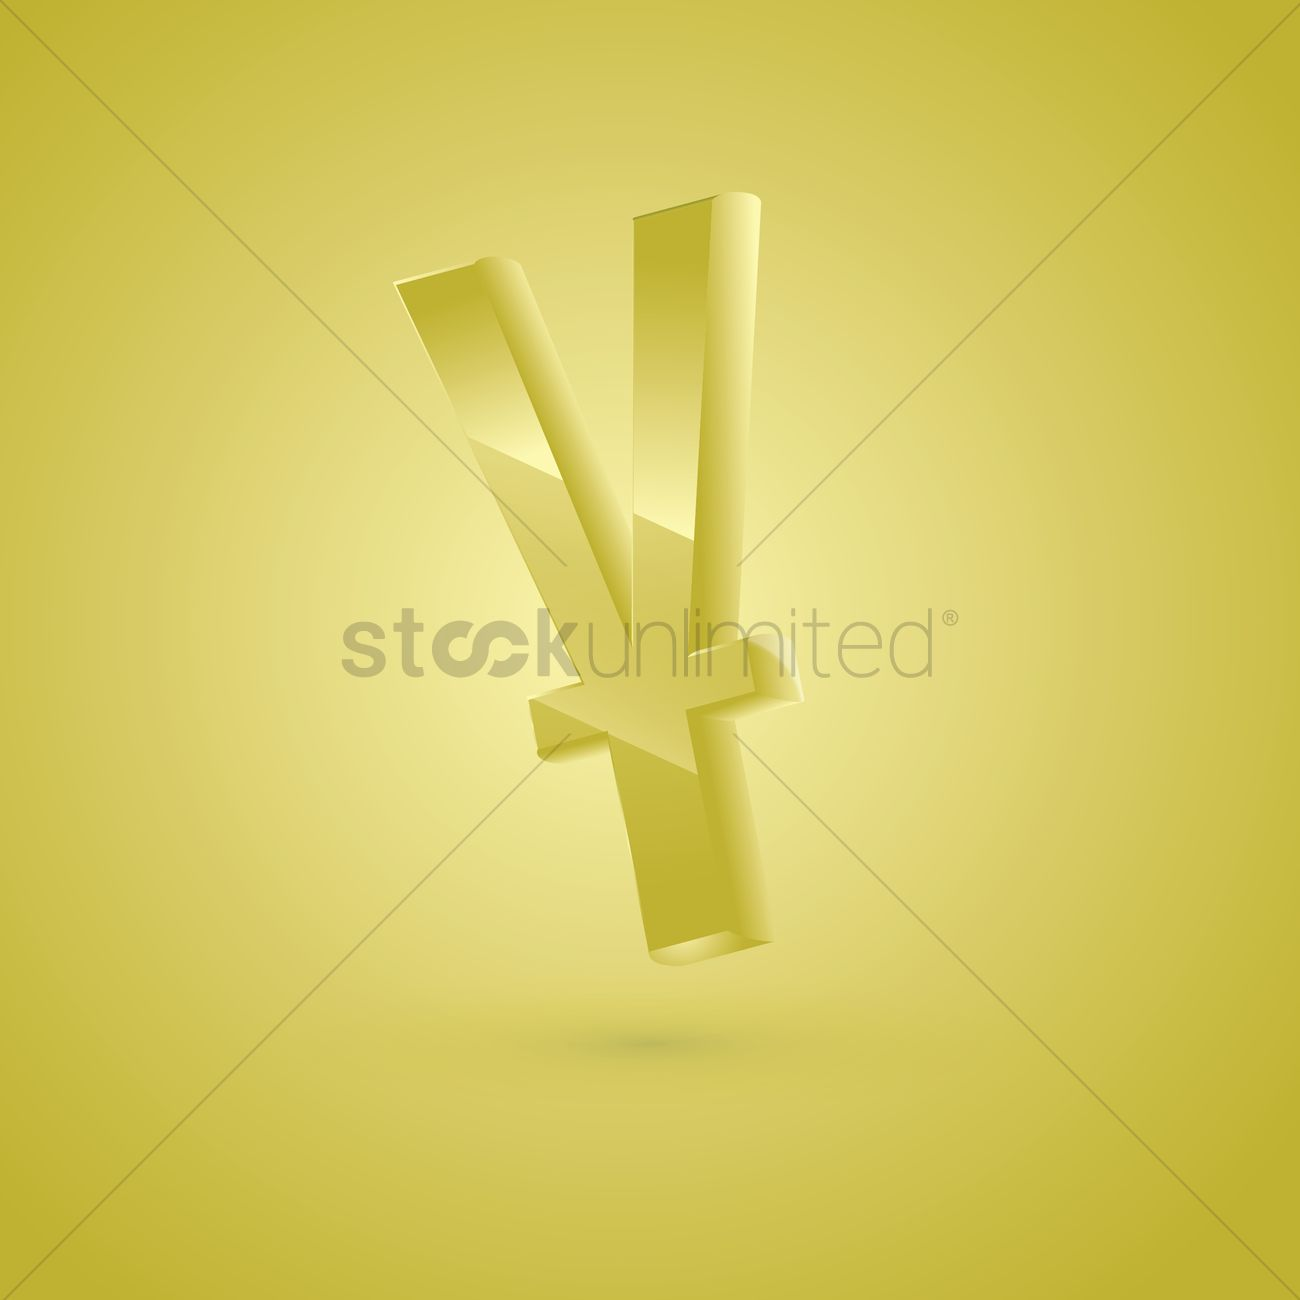 Yuan currency symbol vector image 1607349 stockunlimited yuan currency symbol vector graphic biocorpaavc Image collections